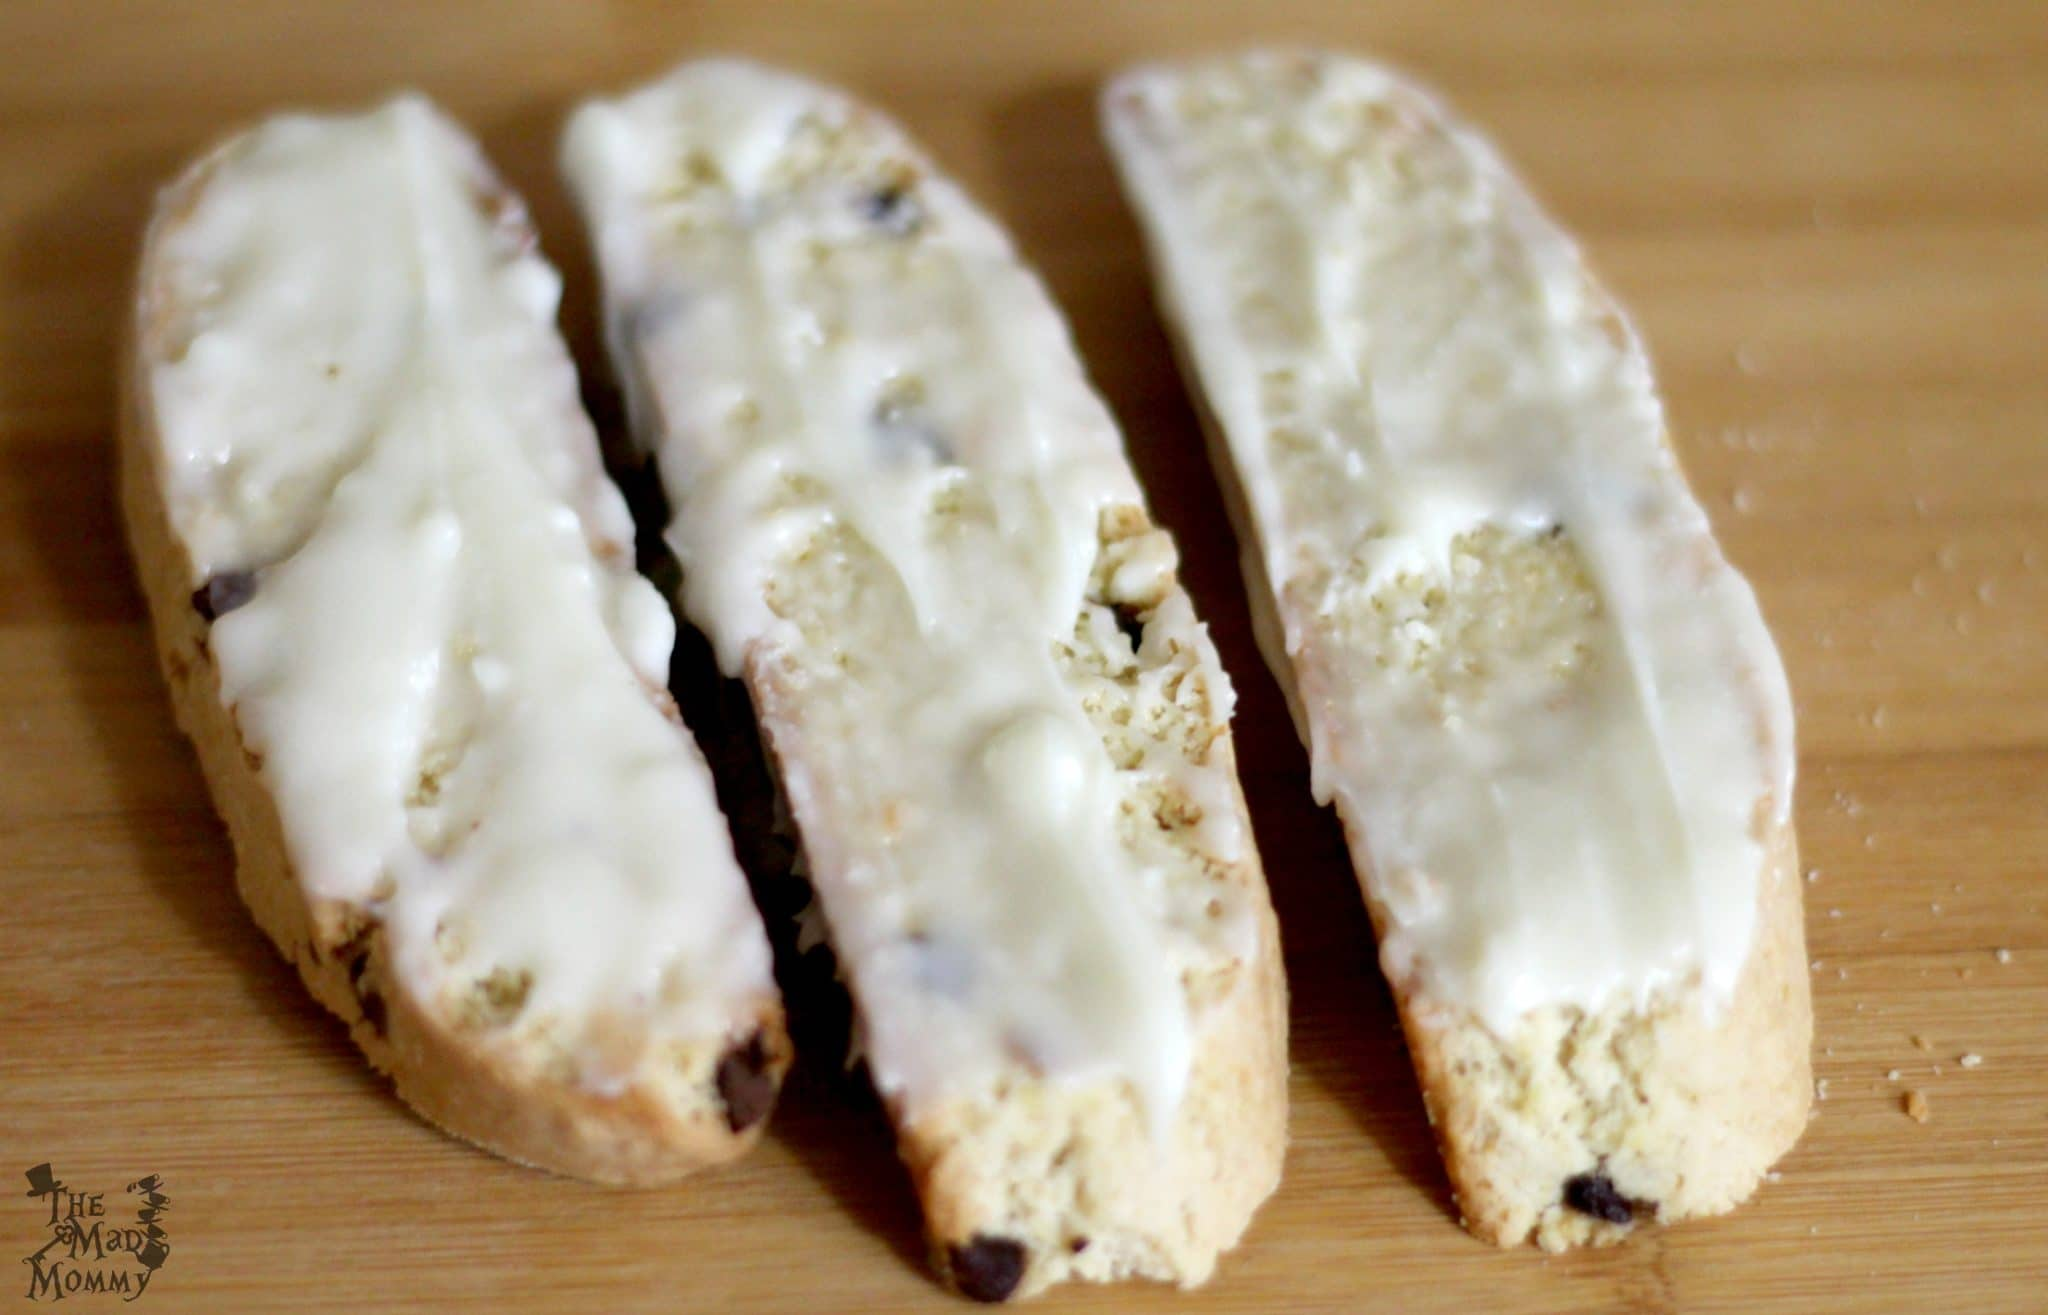 White chocolate is the perfect finishing touch to this baked biscotti recipe. #AD #AToraniHalloween